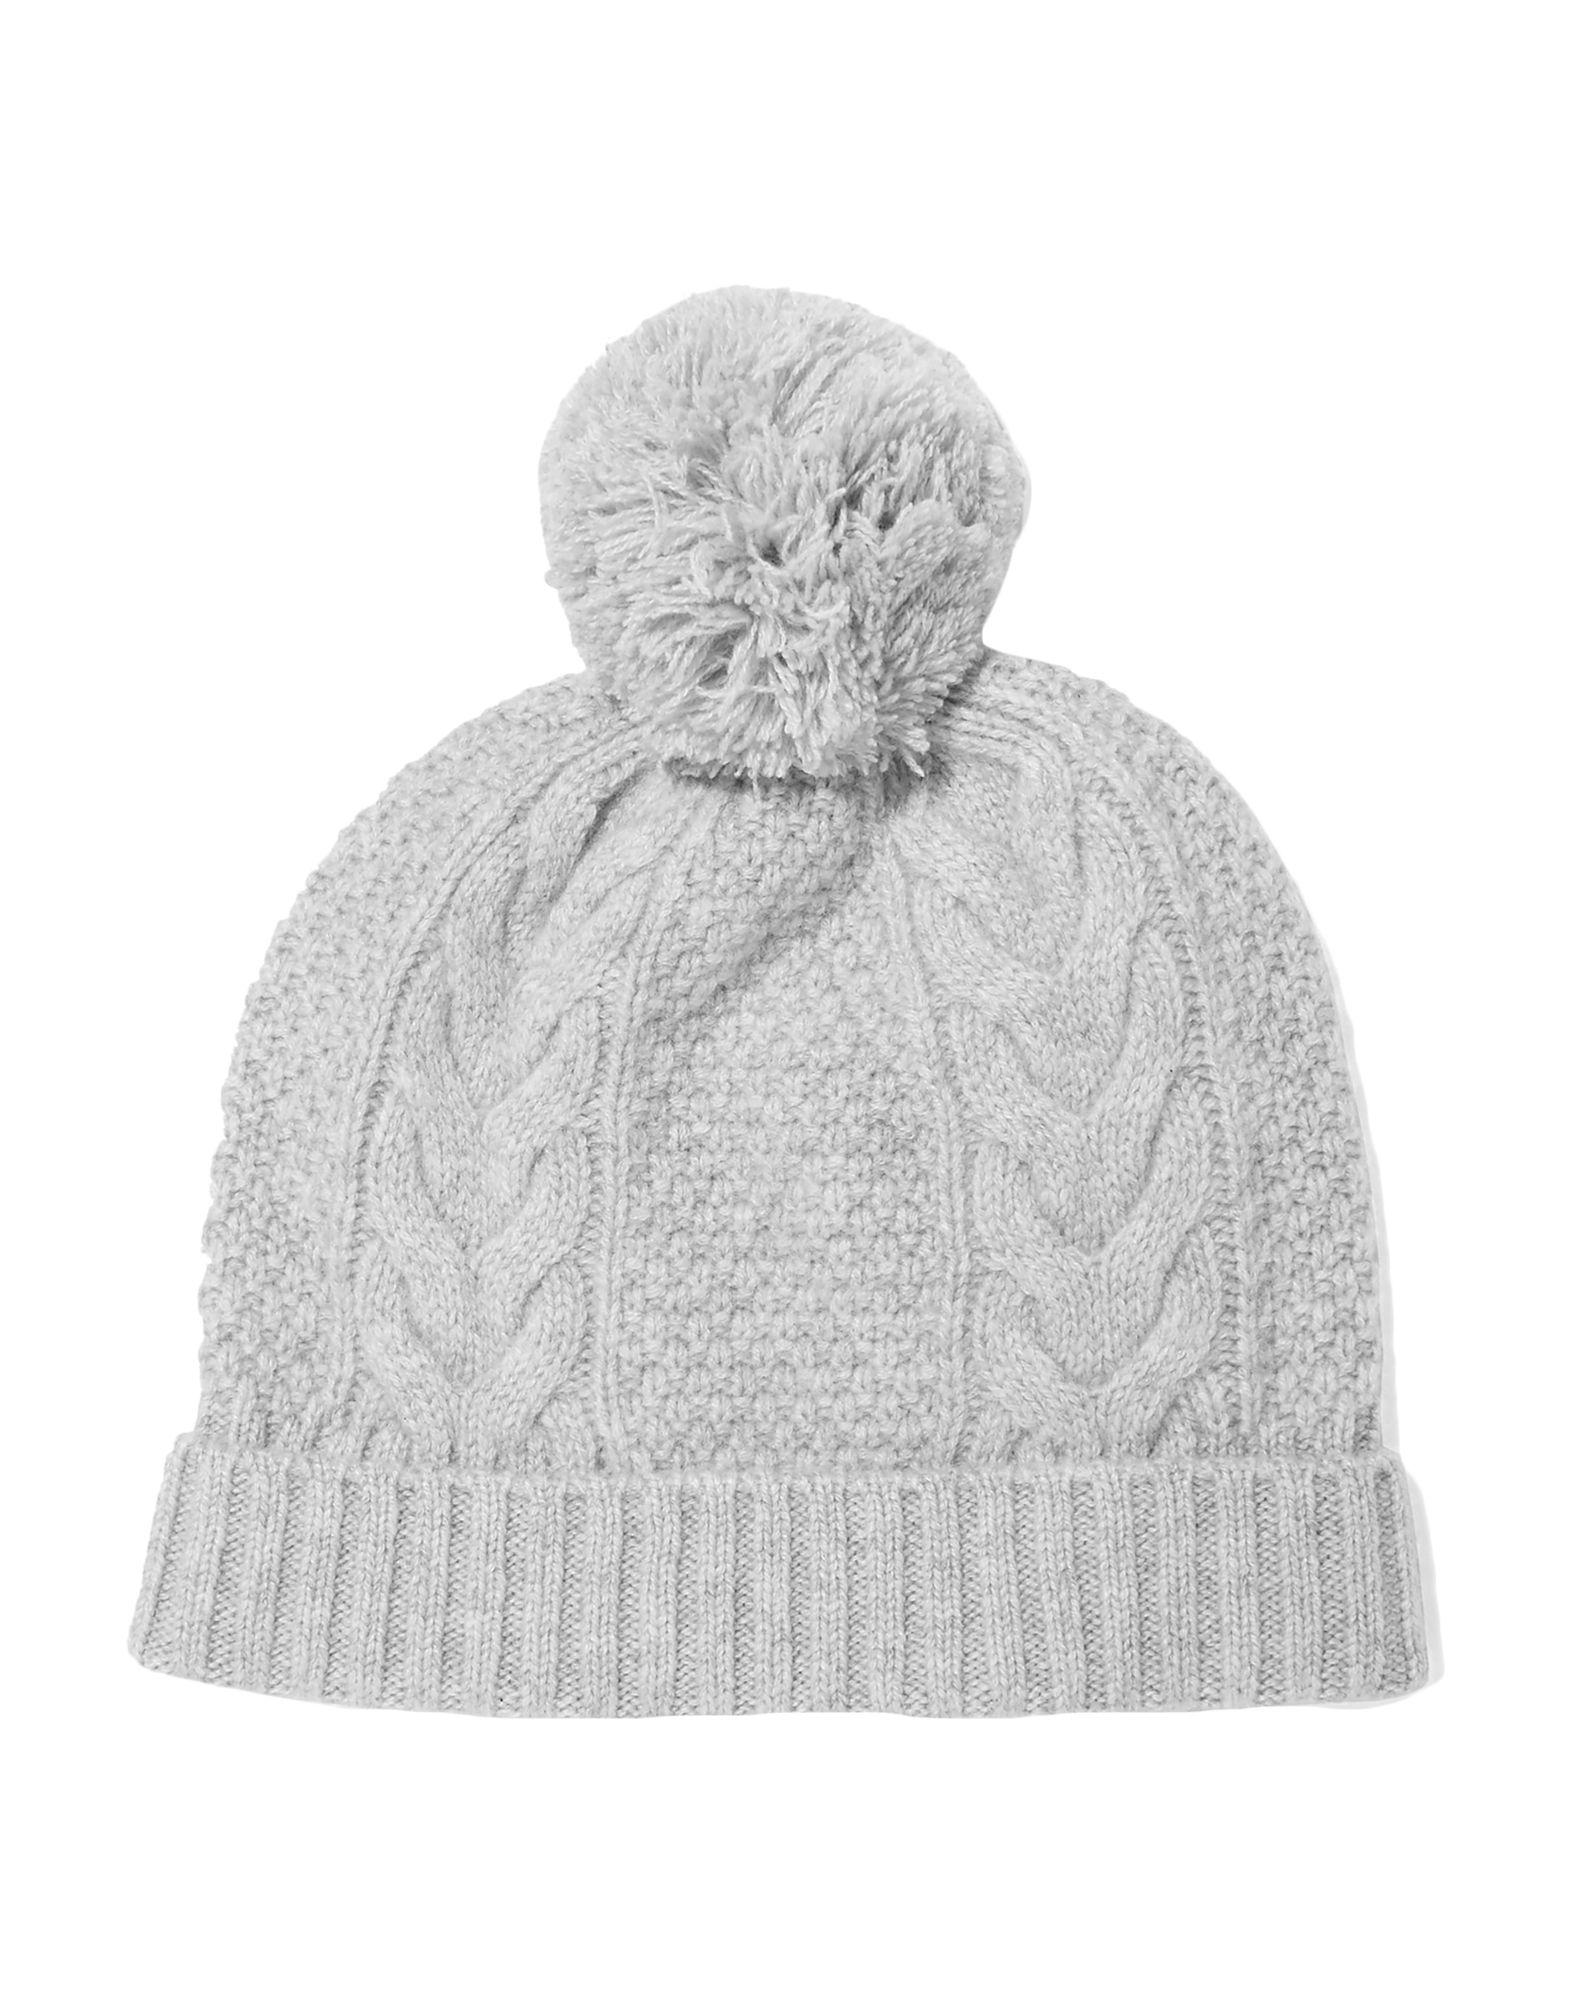 d948e66441a N.Peal Cashmere. Women s Gray Pom Pom-detailed Cable-knit Cashmere Beanie